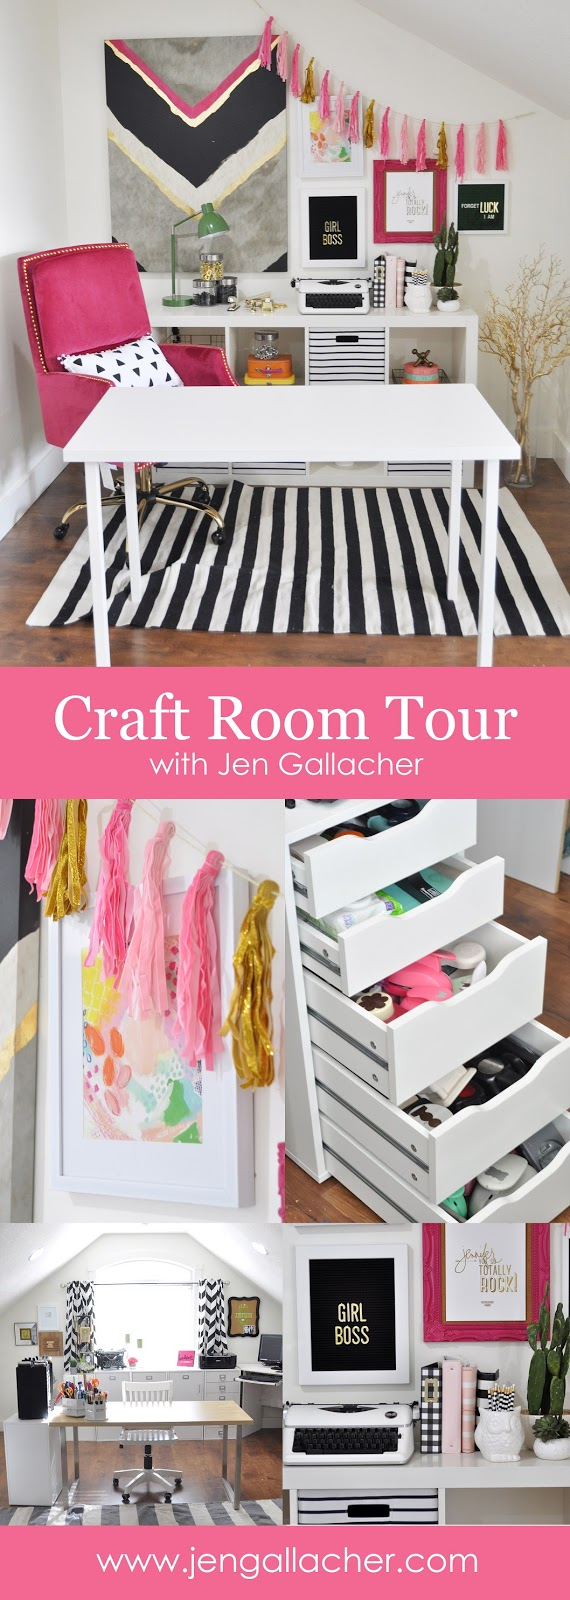 Jen Gallacher Craft Room Tour with Video